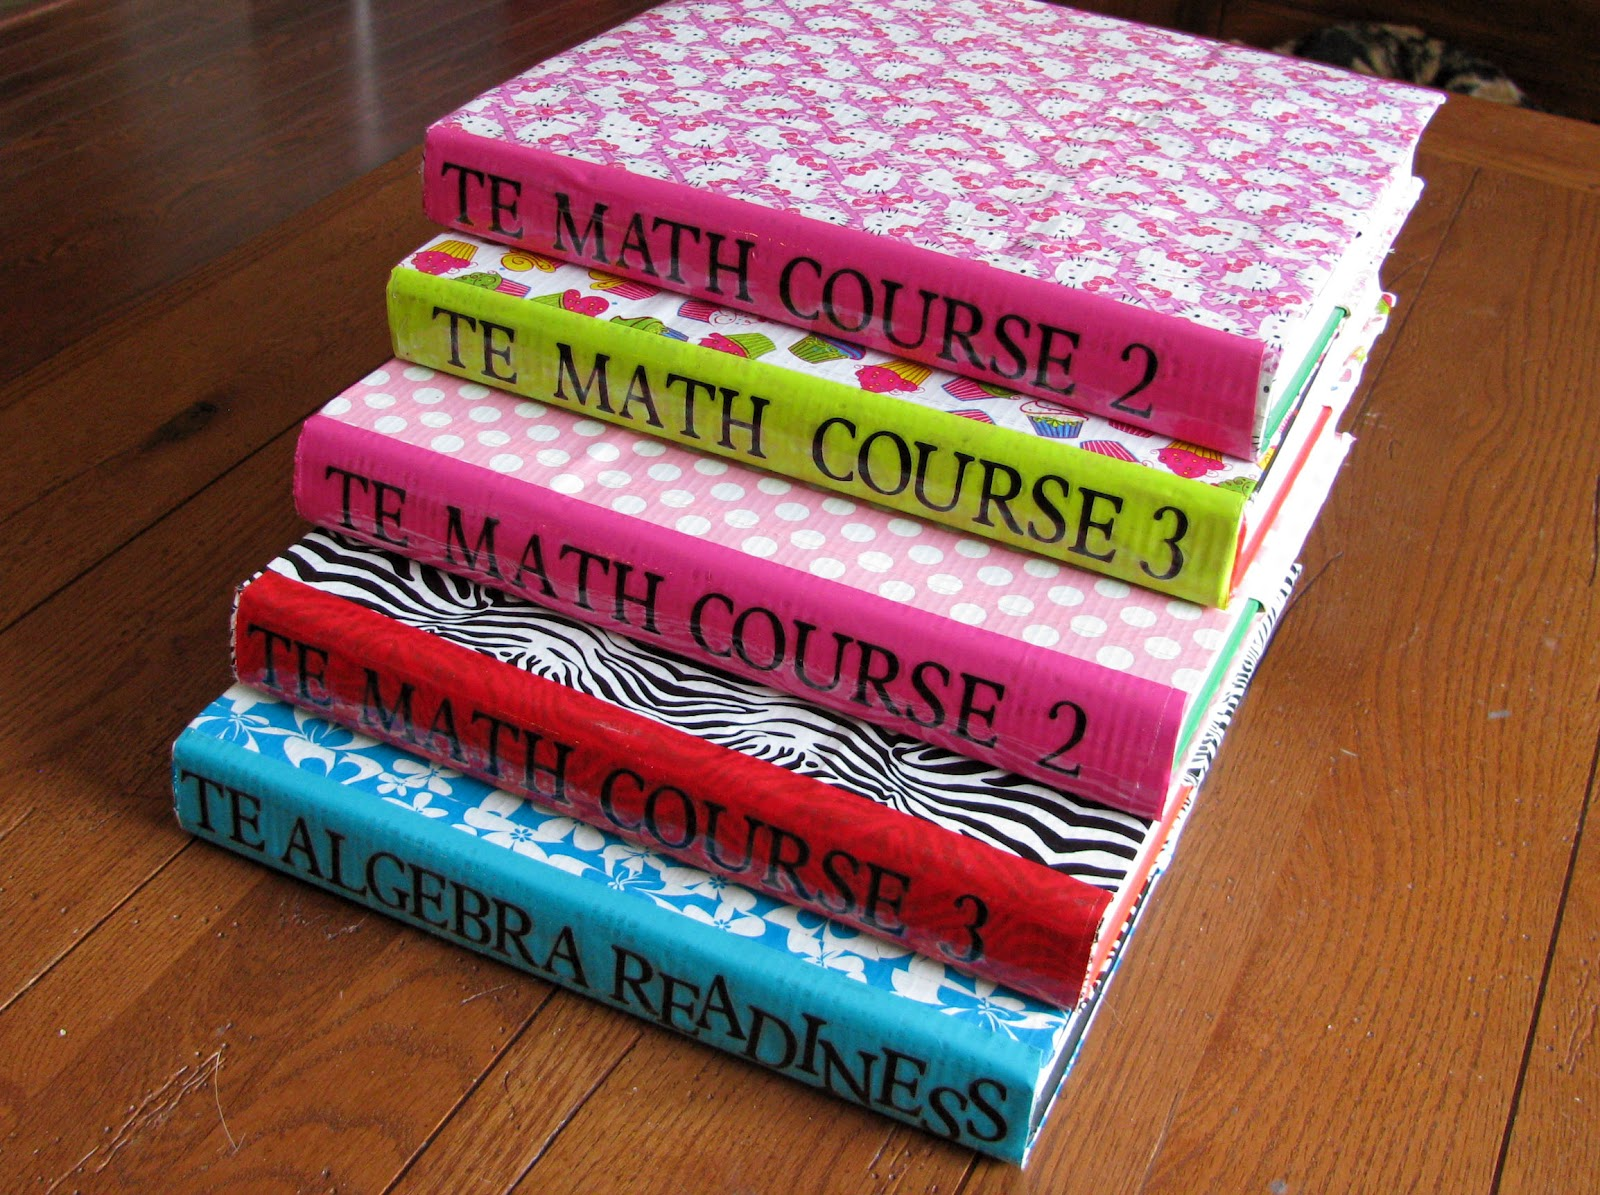 Controlling My Chaos: Durable Textbook Covers